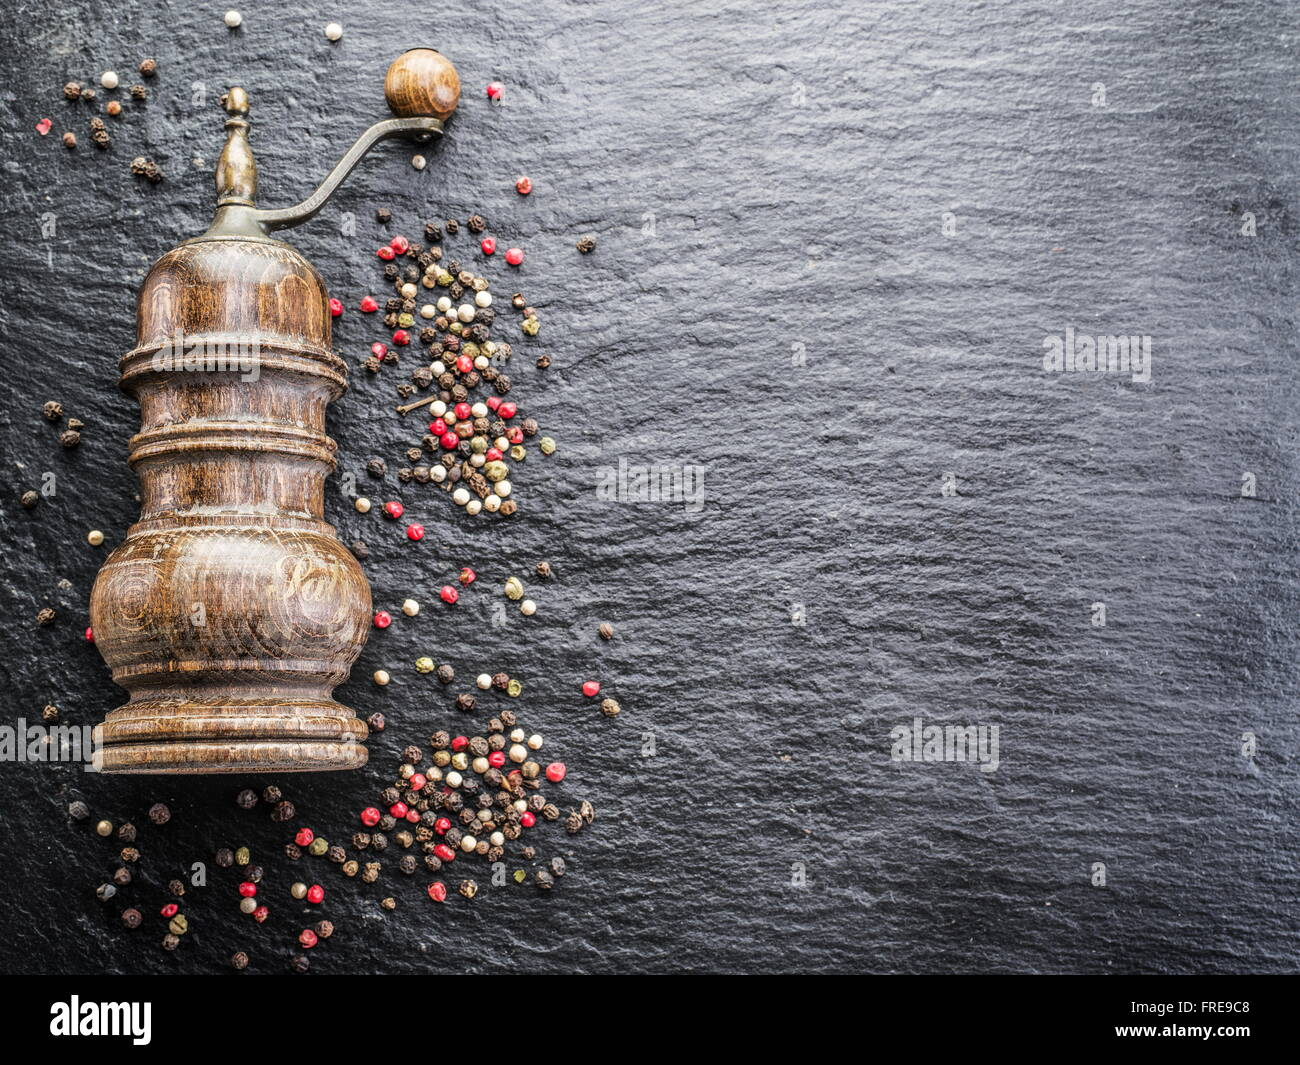 Colorful peppercorns and old pepper mill on the black background. - Stock Image